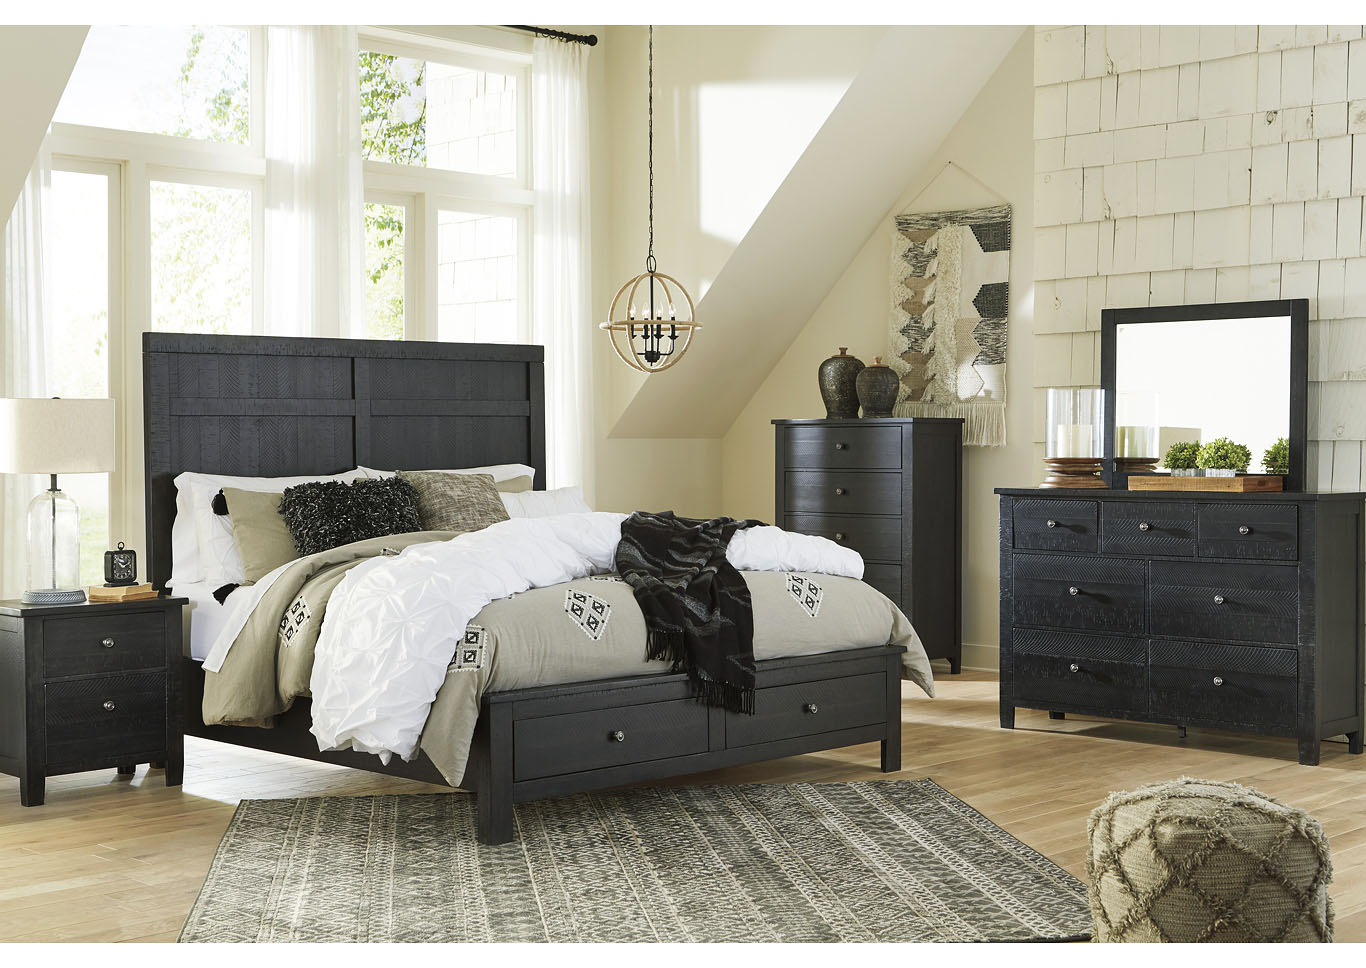 Noorbrook Black Queen Storage Bed w/Dresser and Mirror,Benchcraft